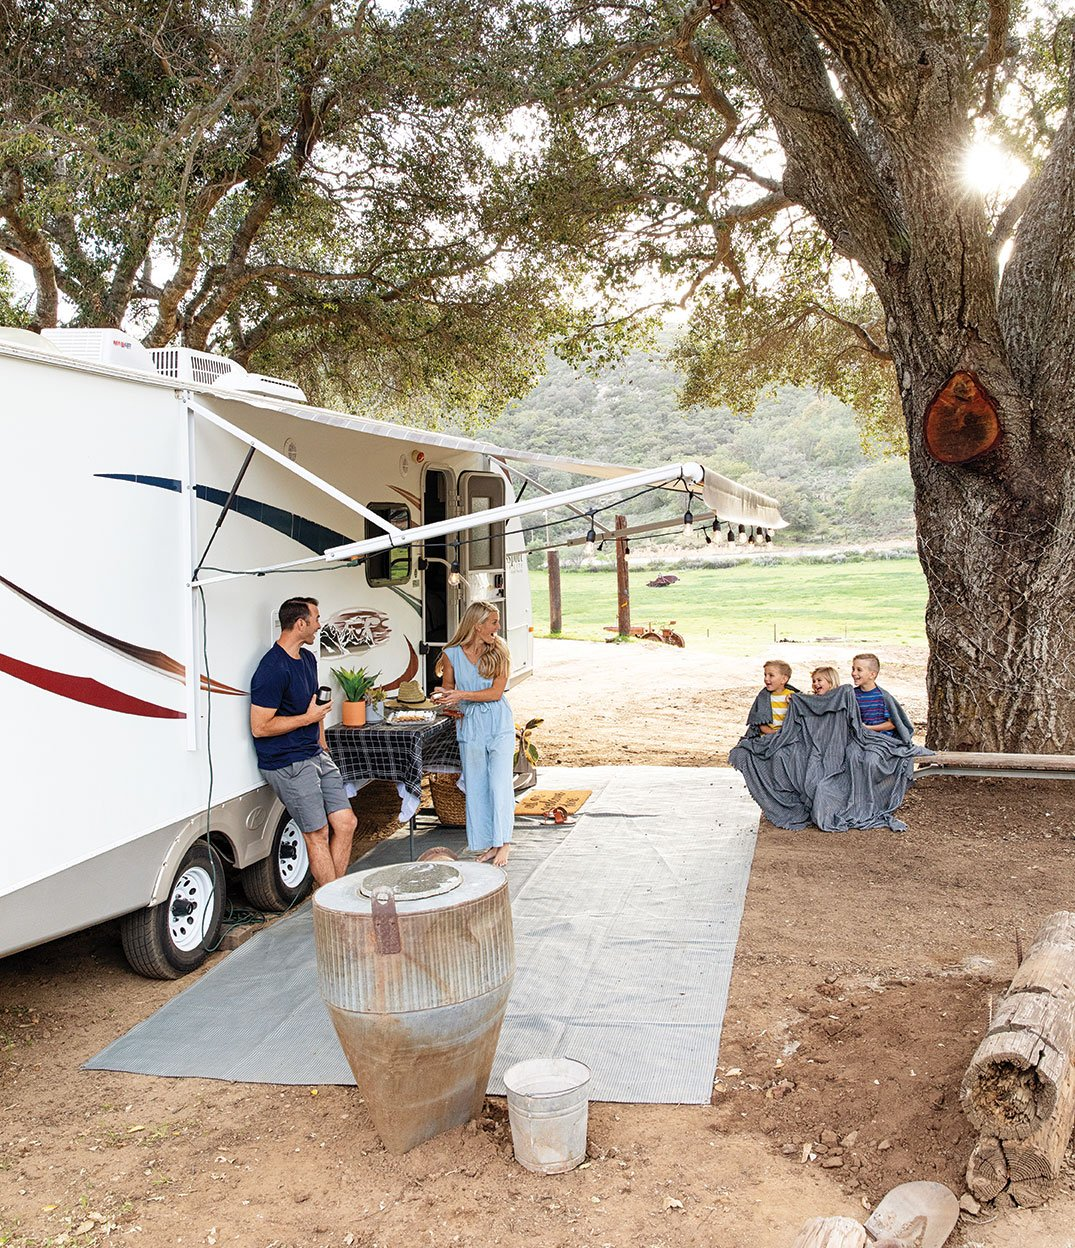 walker campers trailers RVs rentals san diego family camping